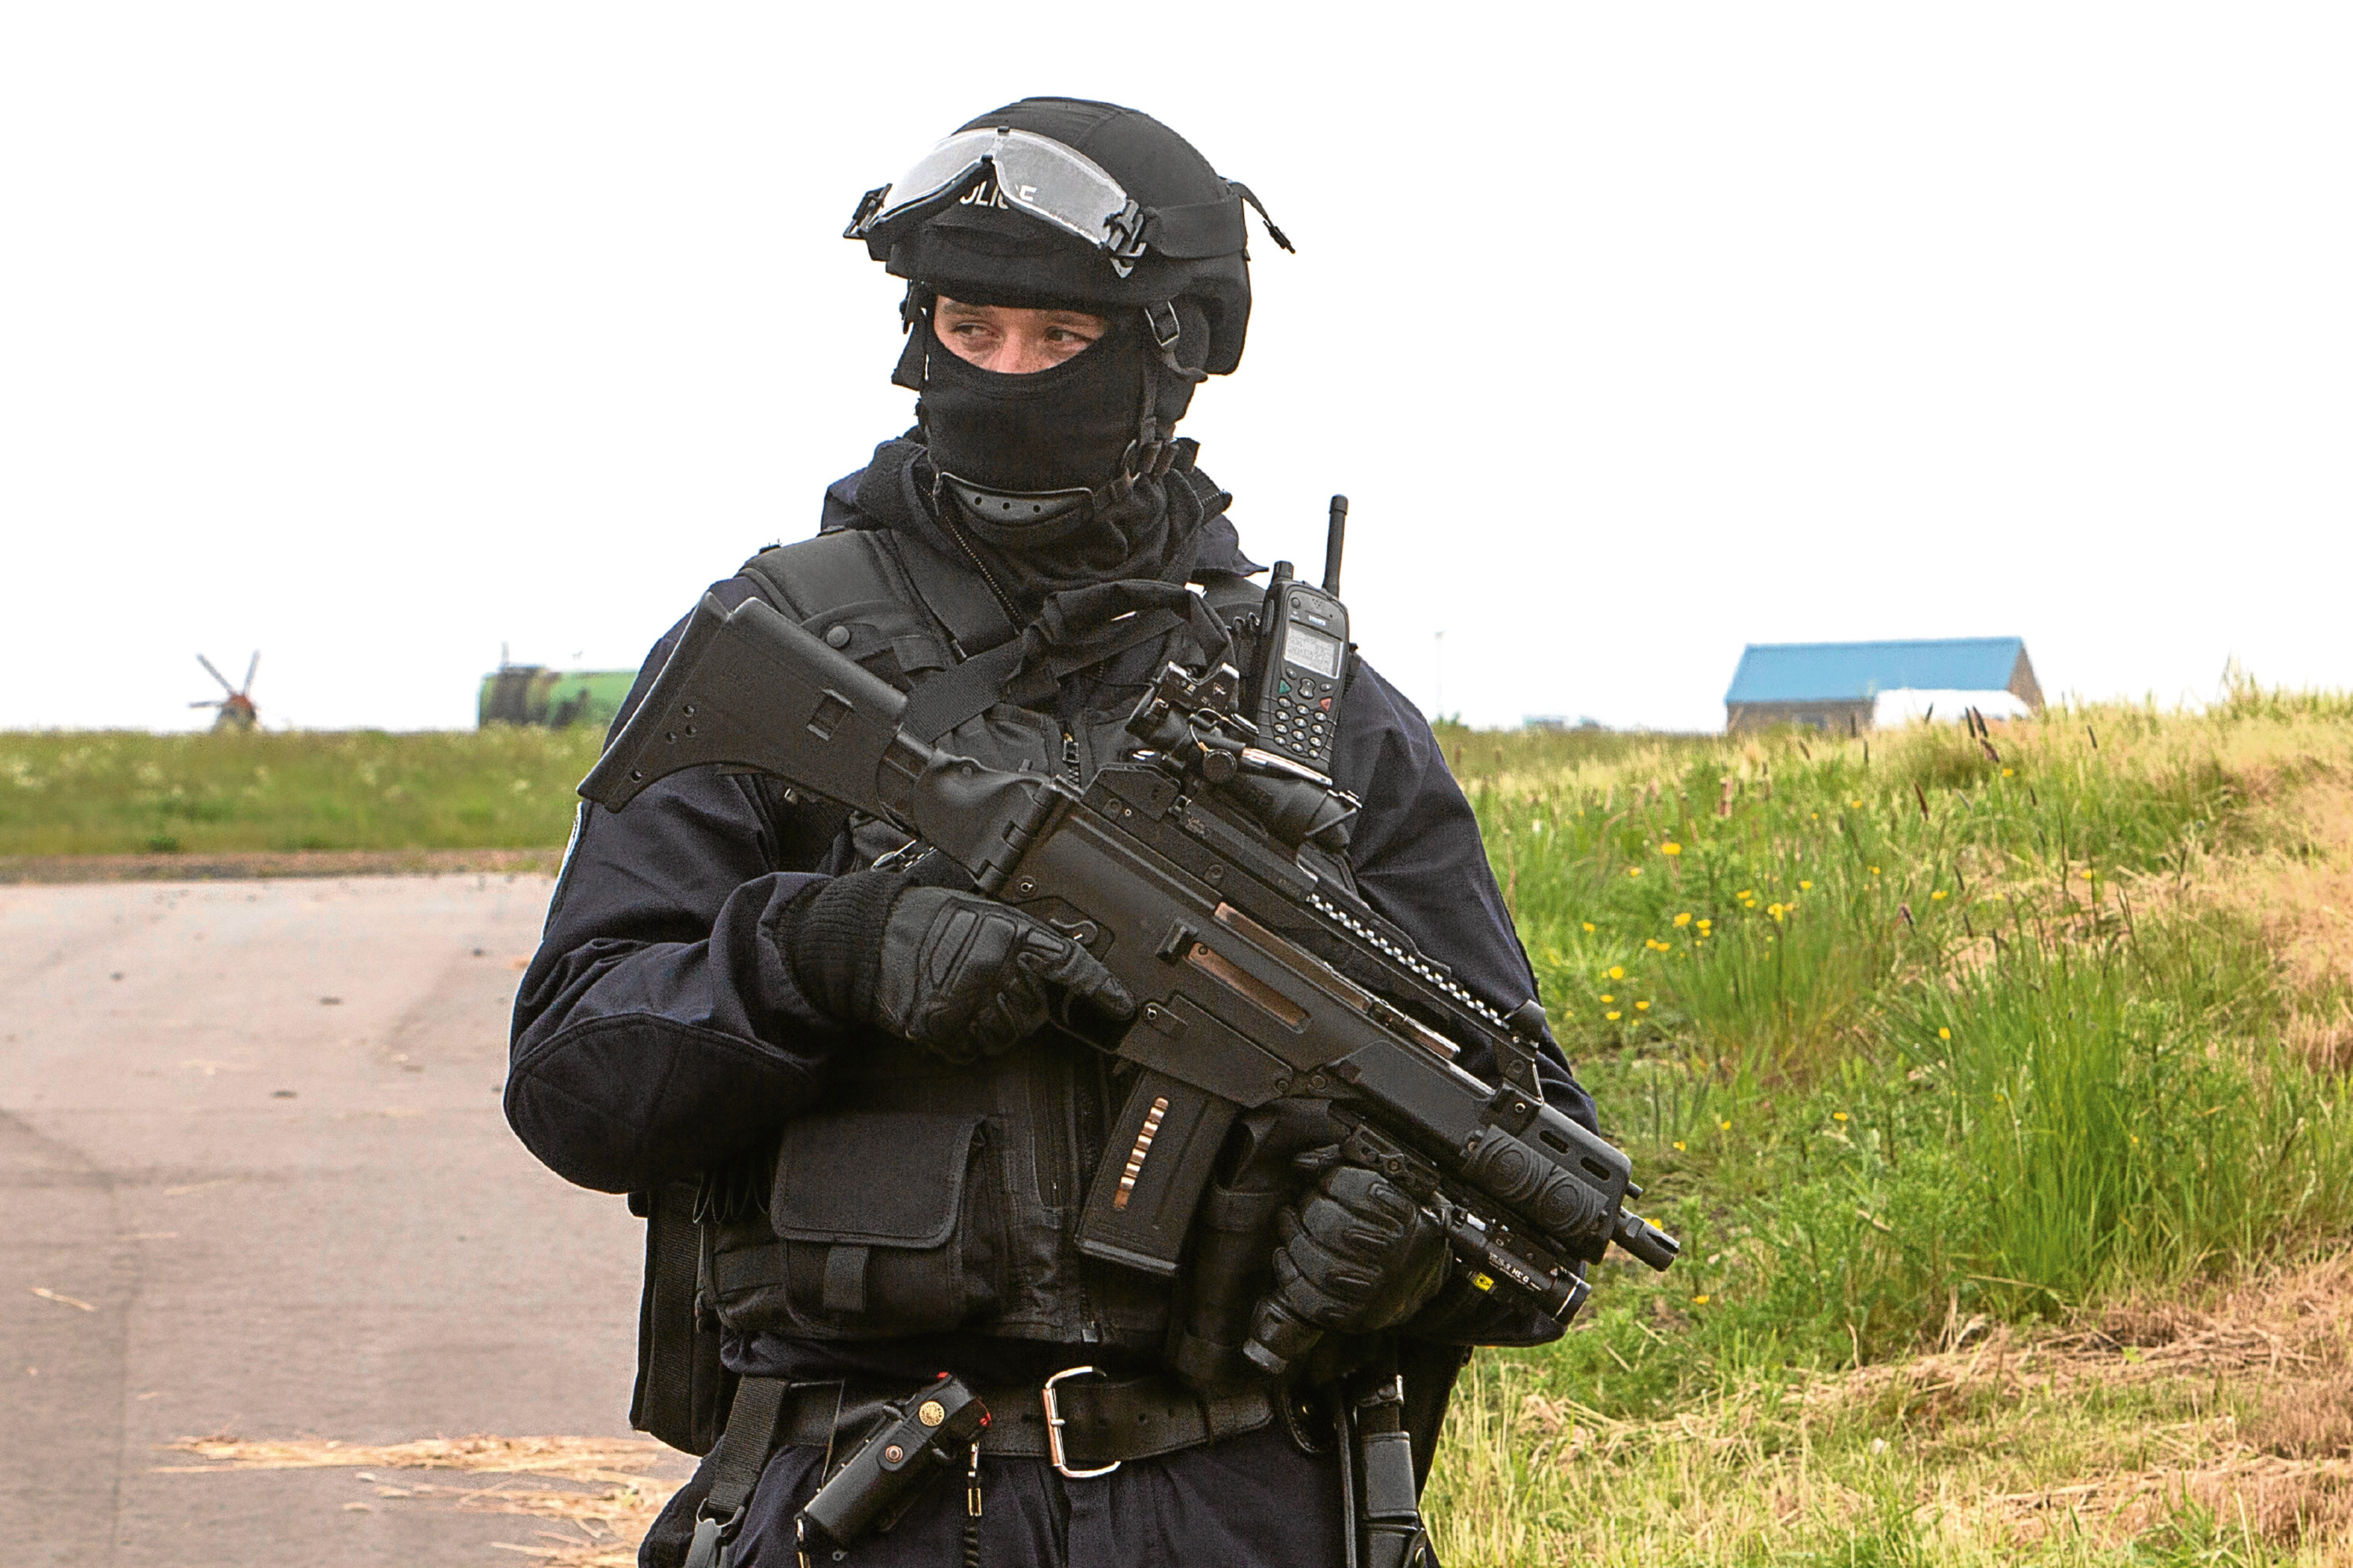 Armed police were positioned inside the airport boundaries and accompanied the nuclear material from Dounreay to Wick (Robert Macdonald/Northern Studios)